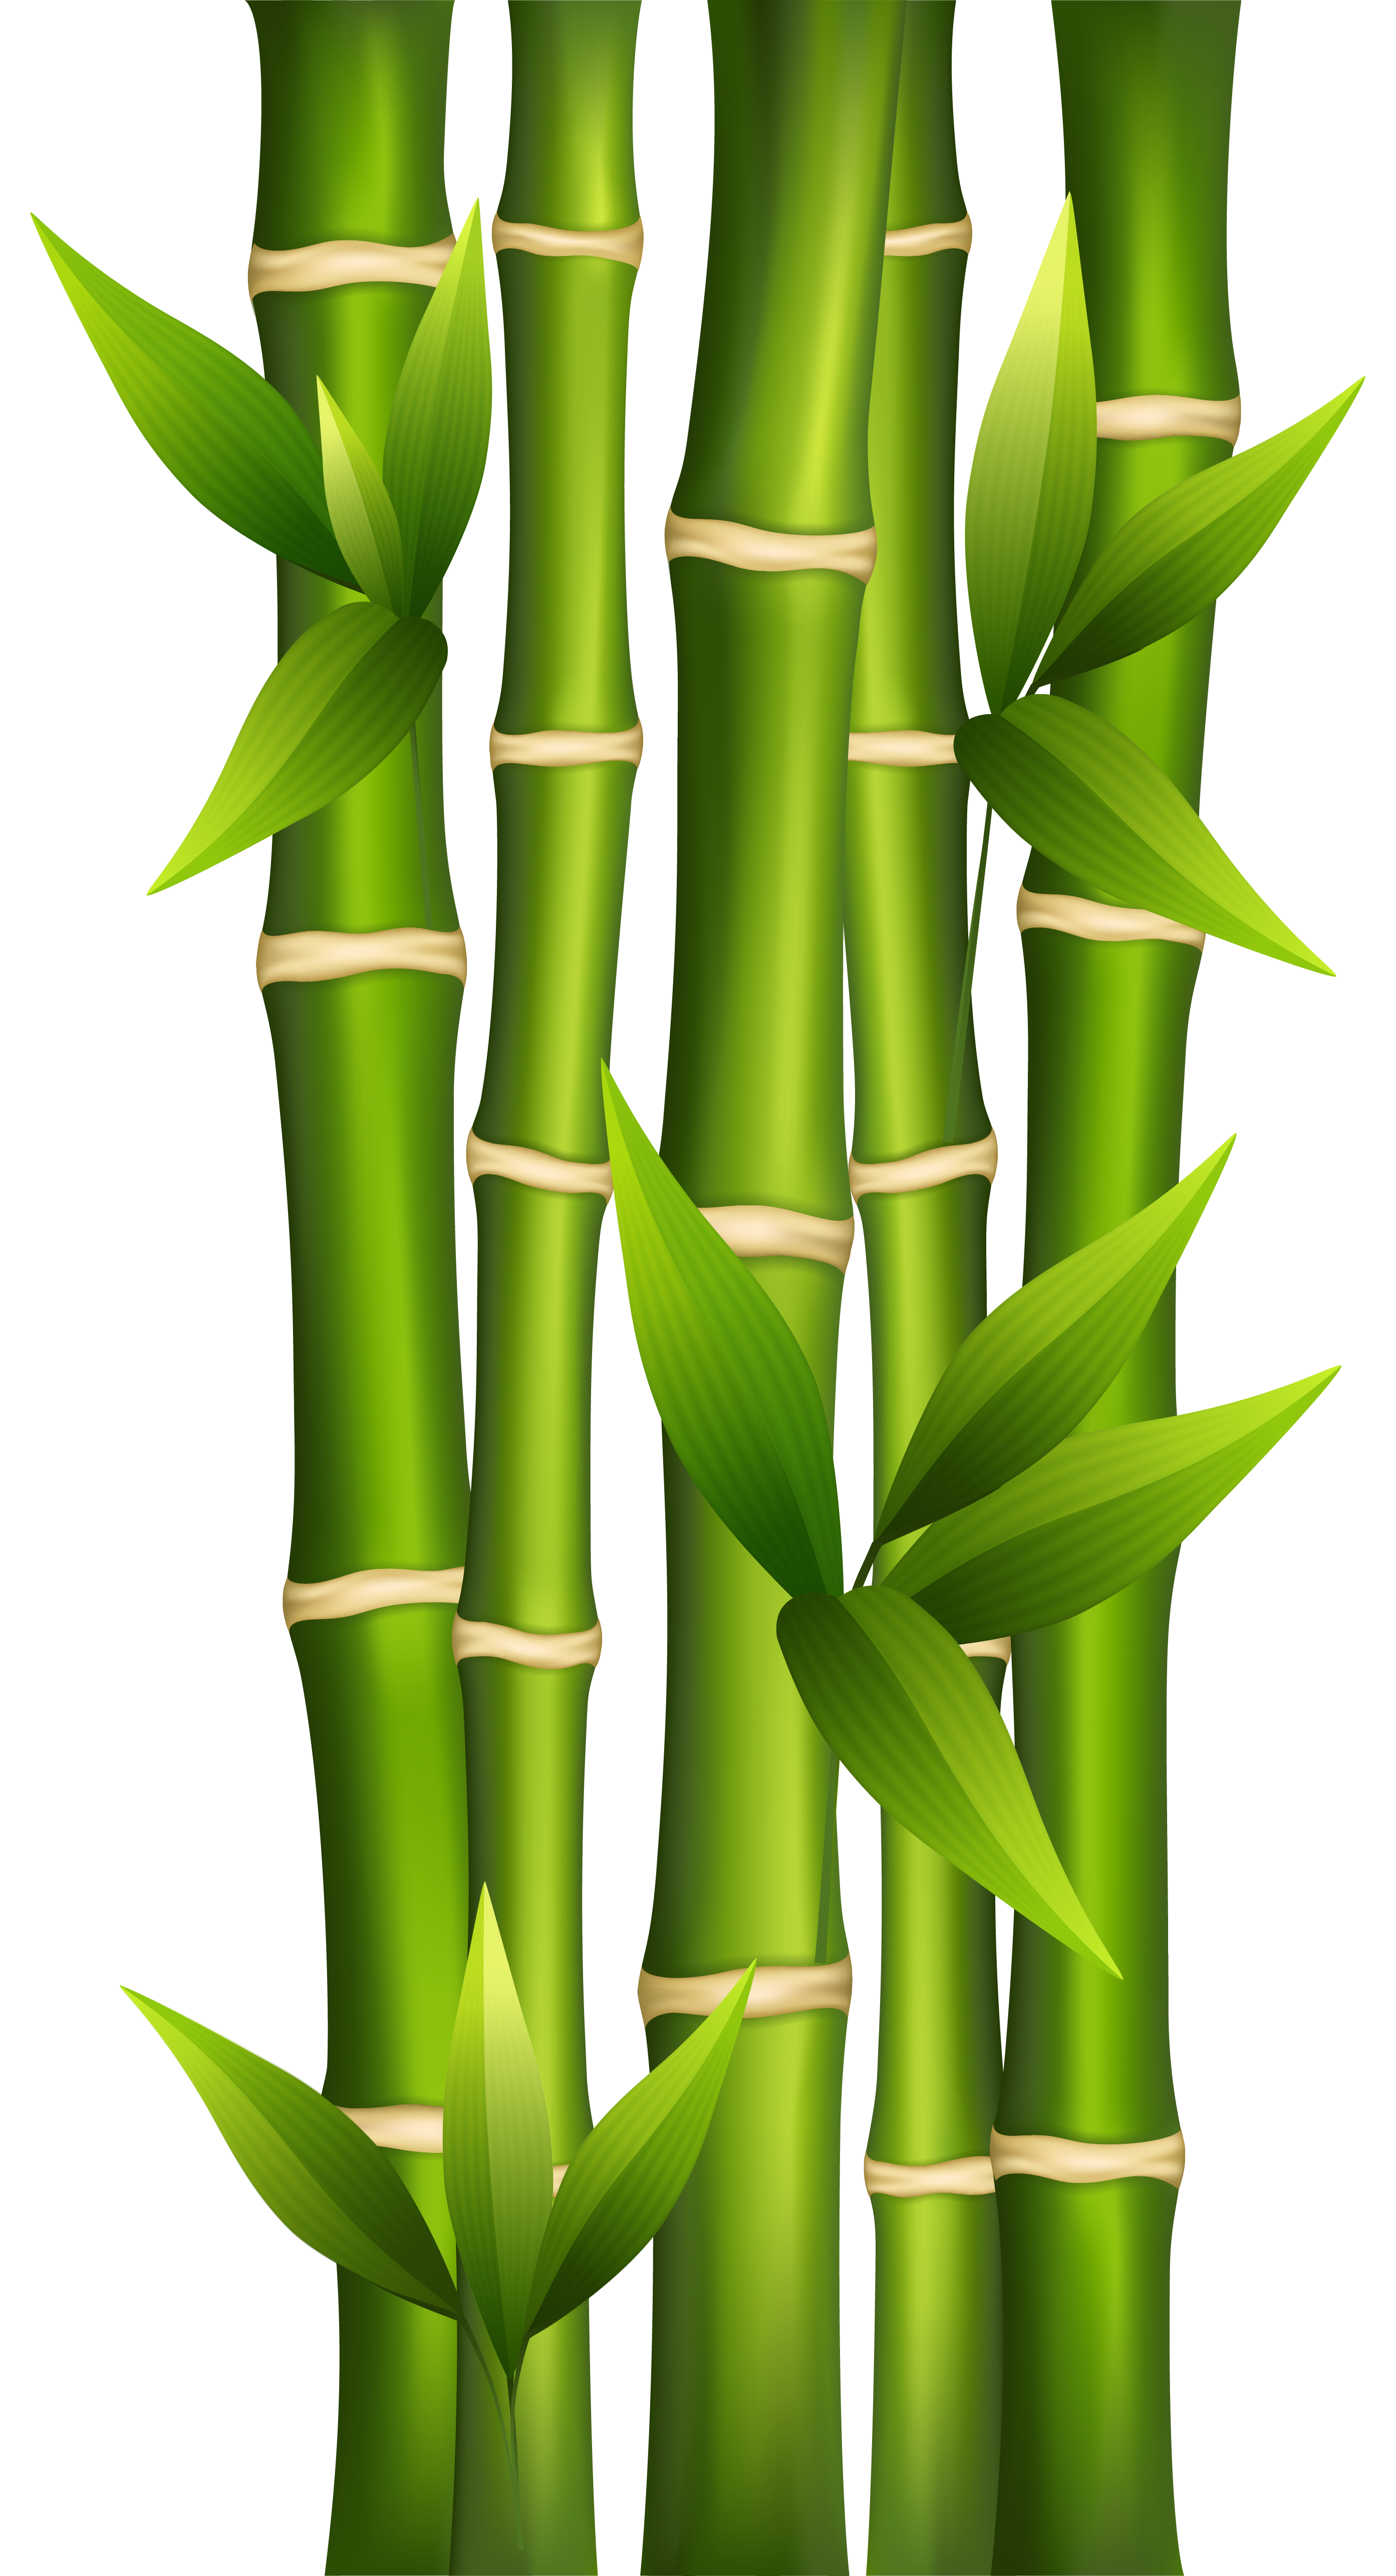 Png image gallery yopriceville. Bamboo clipart scroll image black and white stock